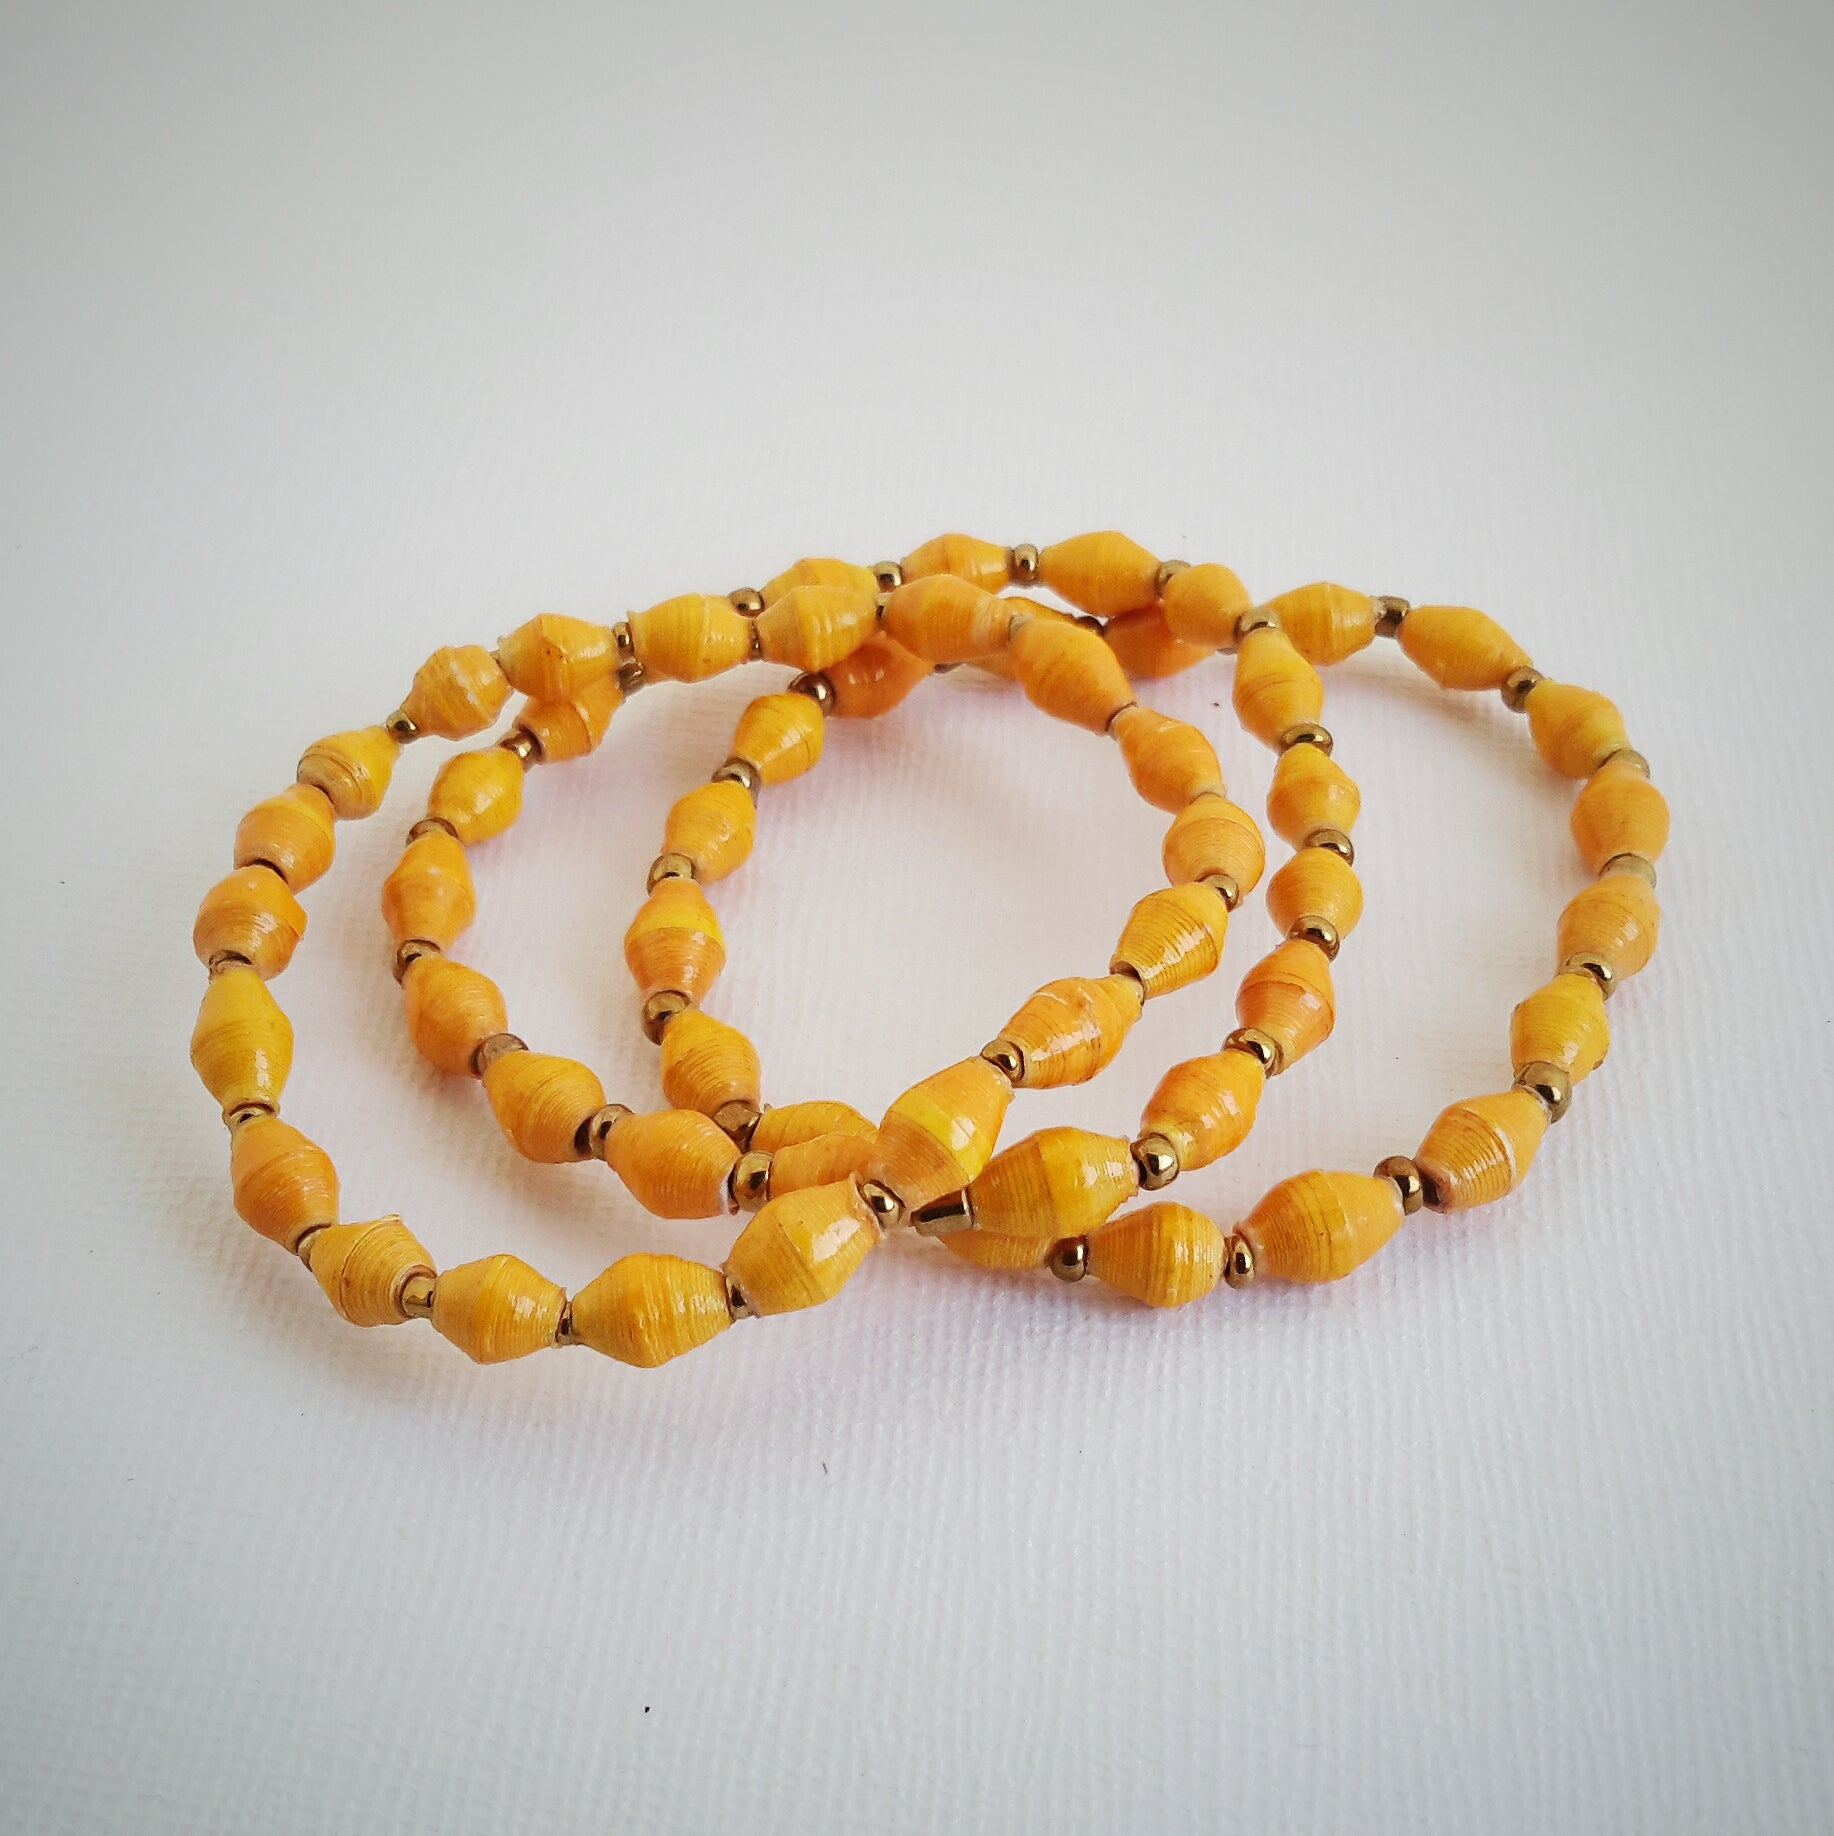 Yellow hand made design paper bead bracelets made out of recycled paper in Uganda by principles of fair trade, ethical and sustainable fashion, empowering women of post war area, by Finnish / Scandinavian brand, Agulu Paper Beads. Eettiset keltaiset käsintehdyt design rannekorut, jotka on tehty kierrätyspaperista reilun kaupan periaattein työllistämällä kehitysmaan nasia.